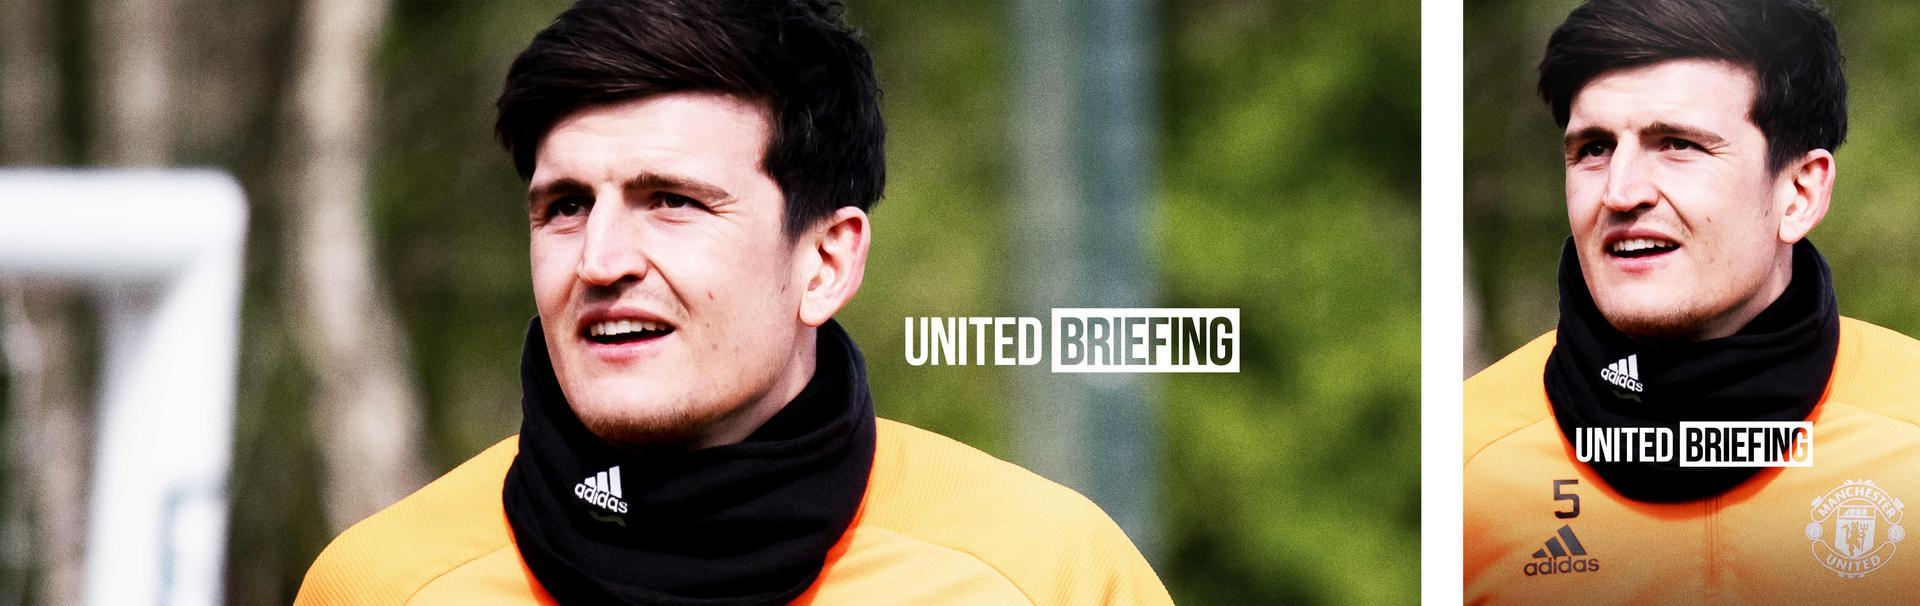 United Briefing title image featuring Harry Maguire